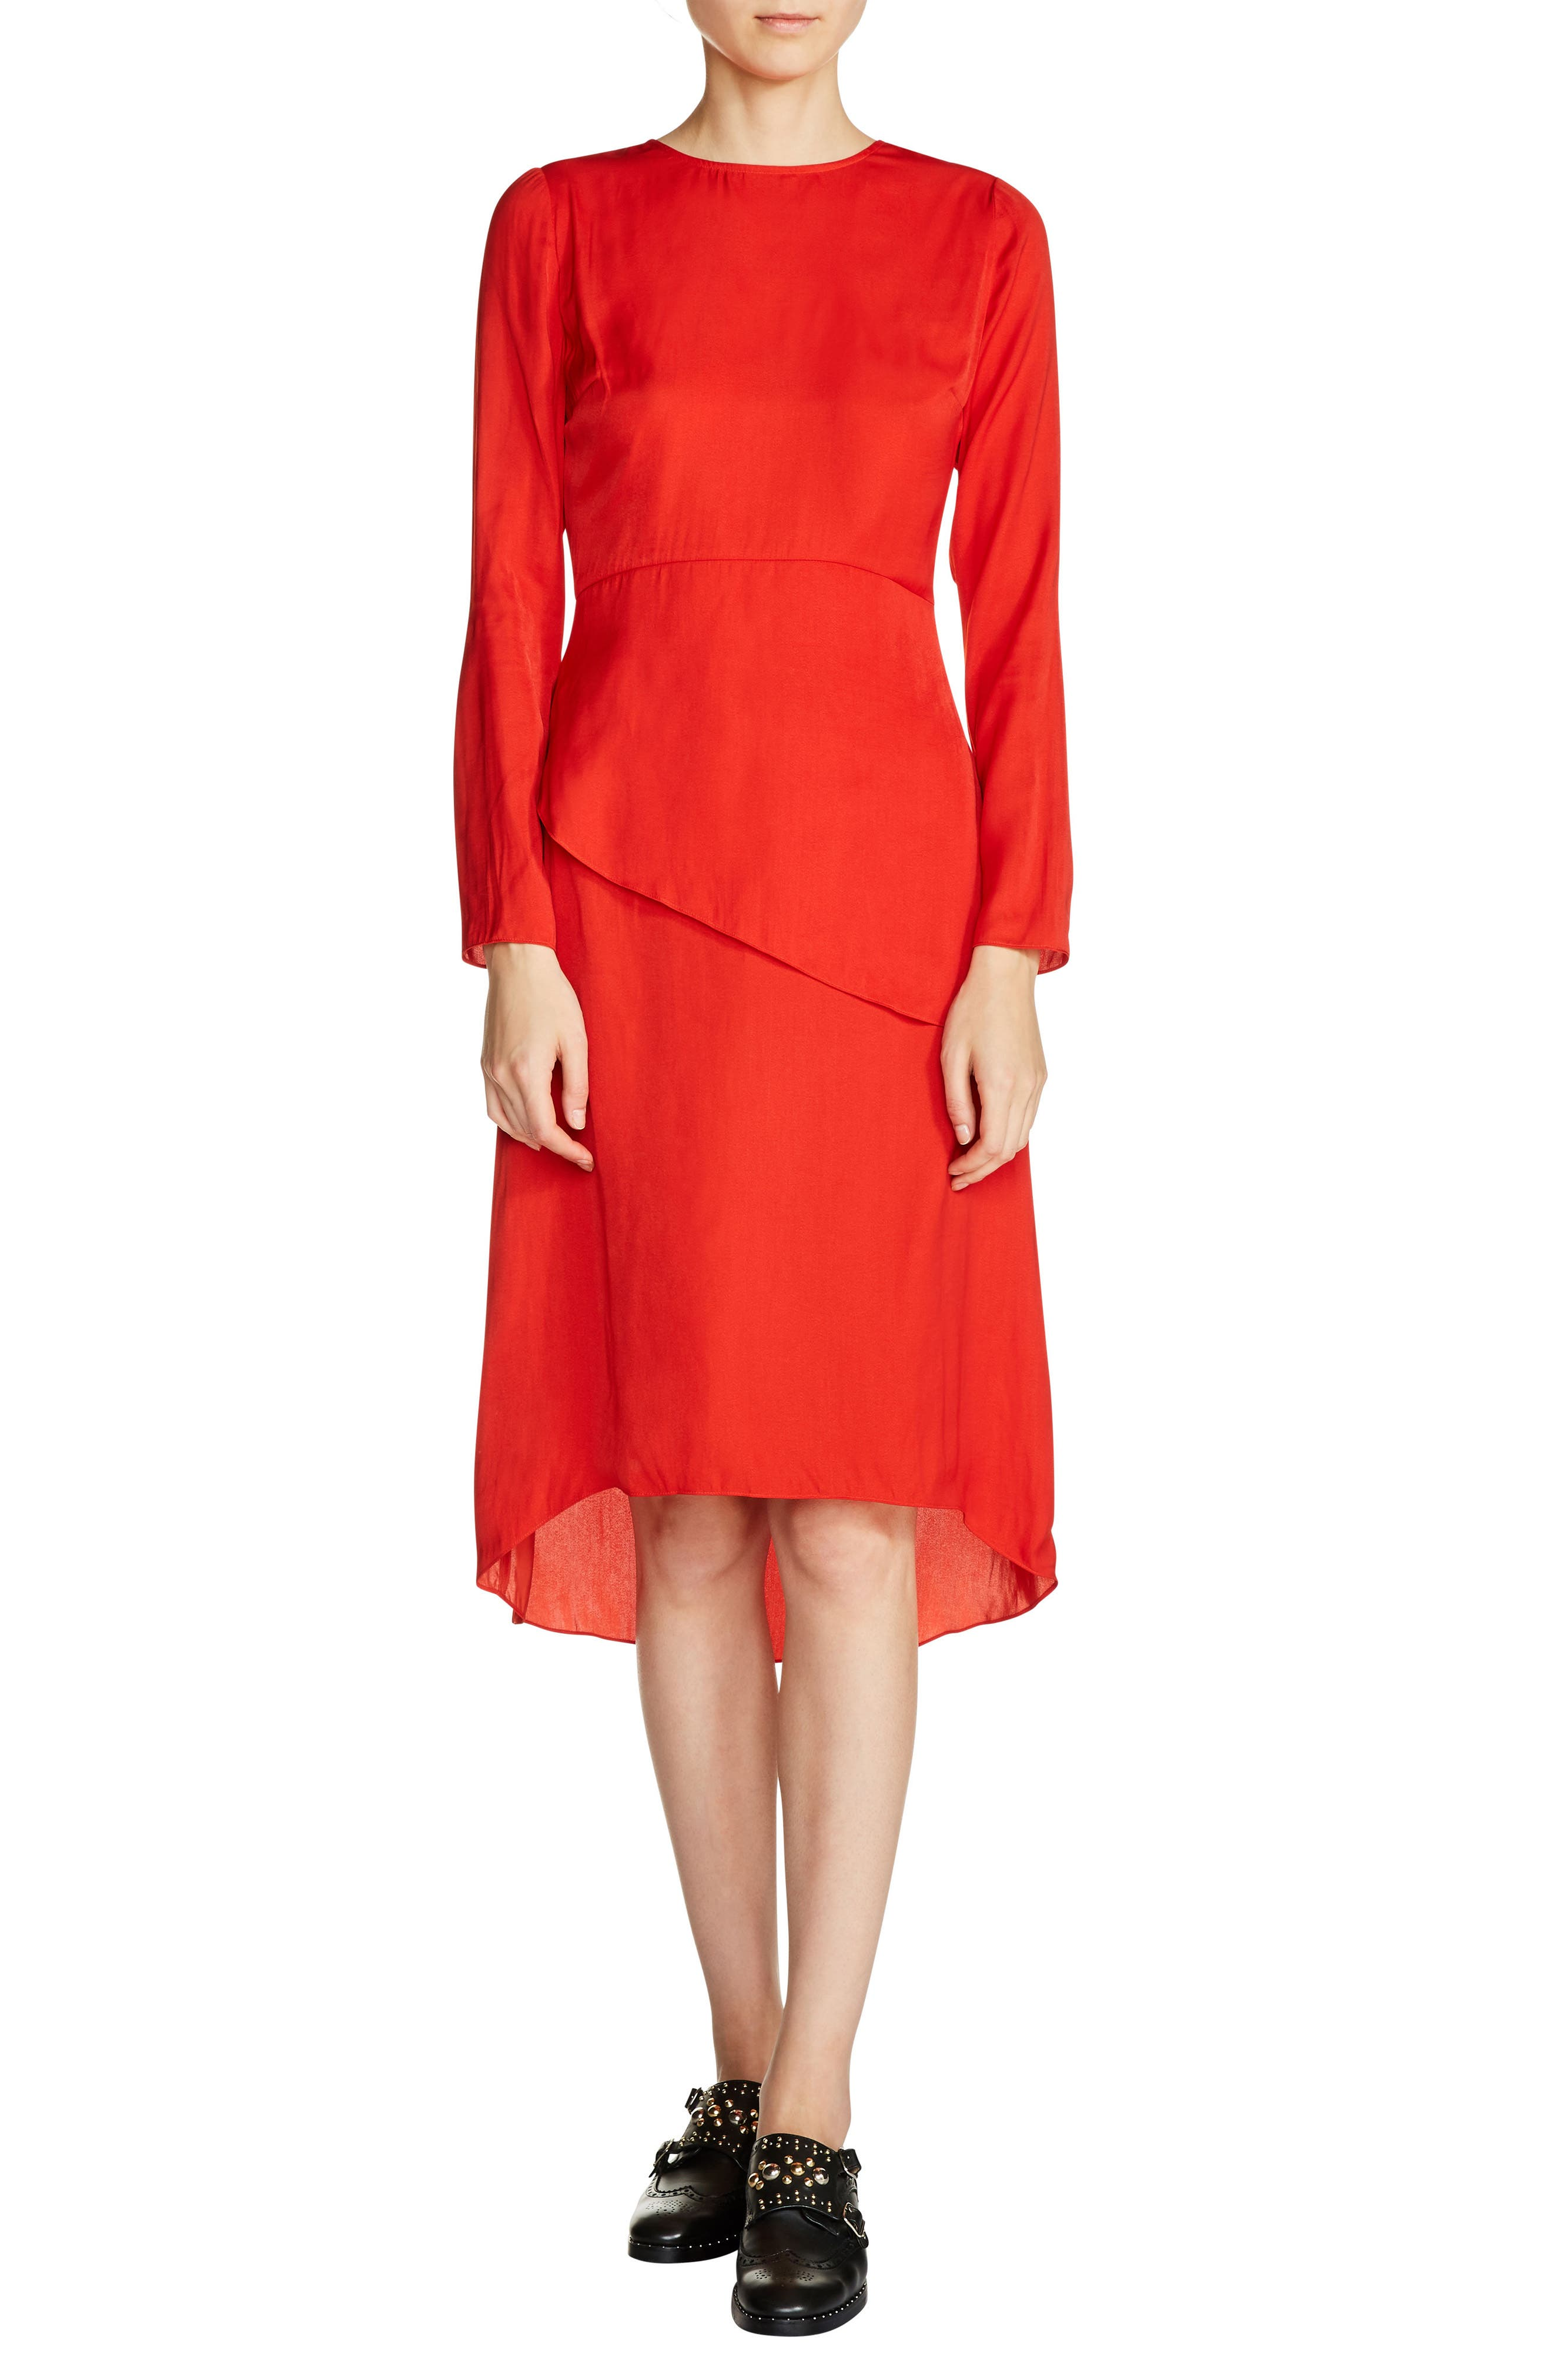 Tiered A-Line Dress,                         Main,                         color, Red